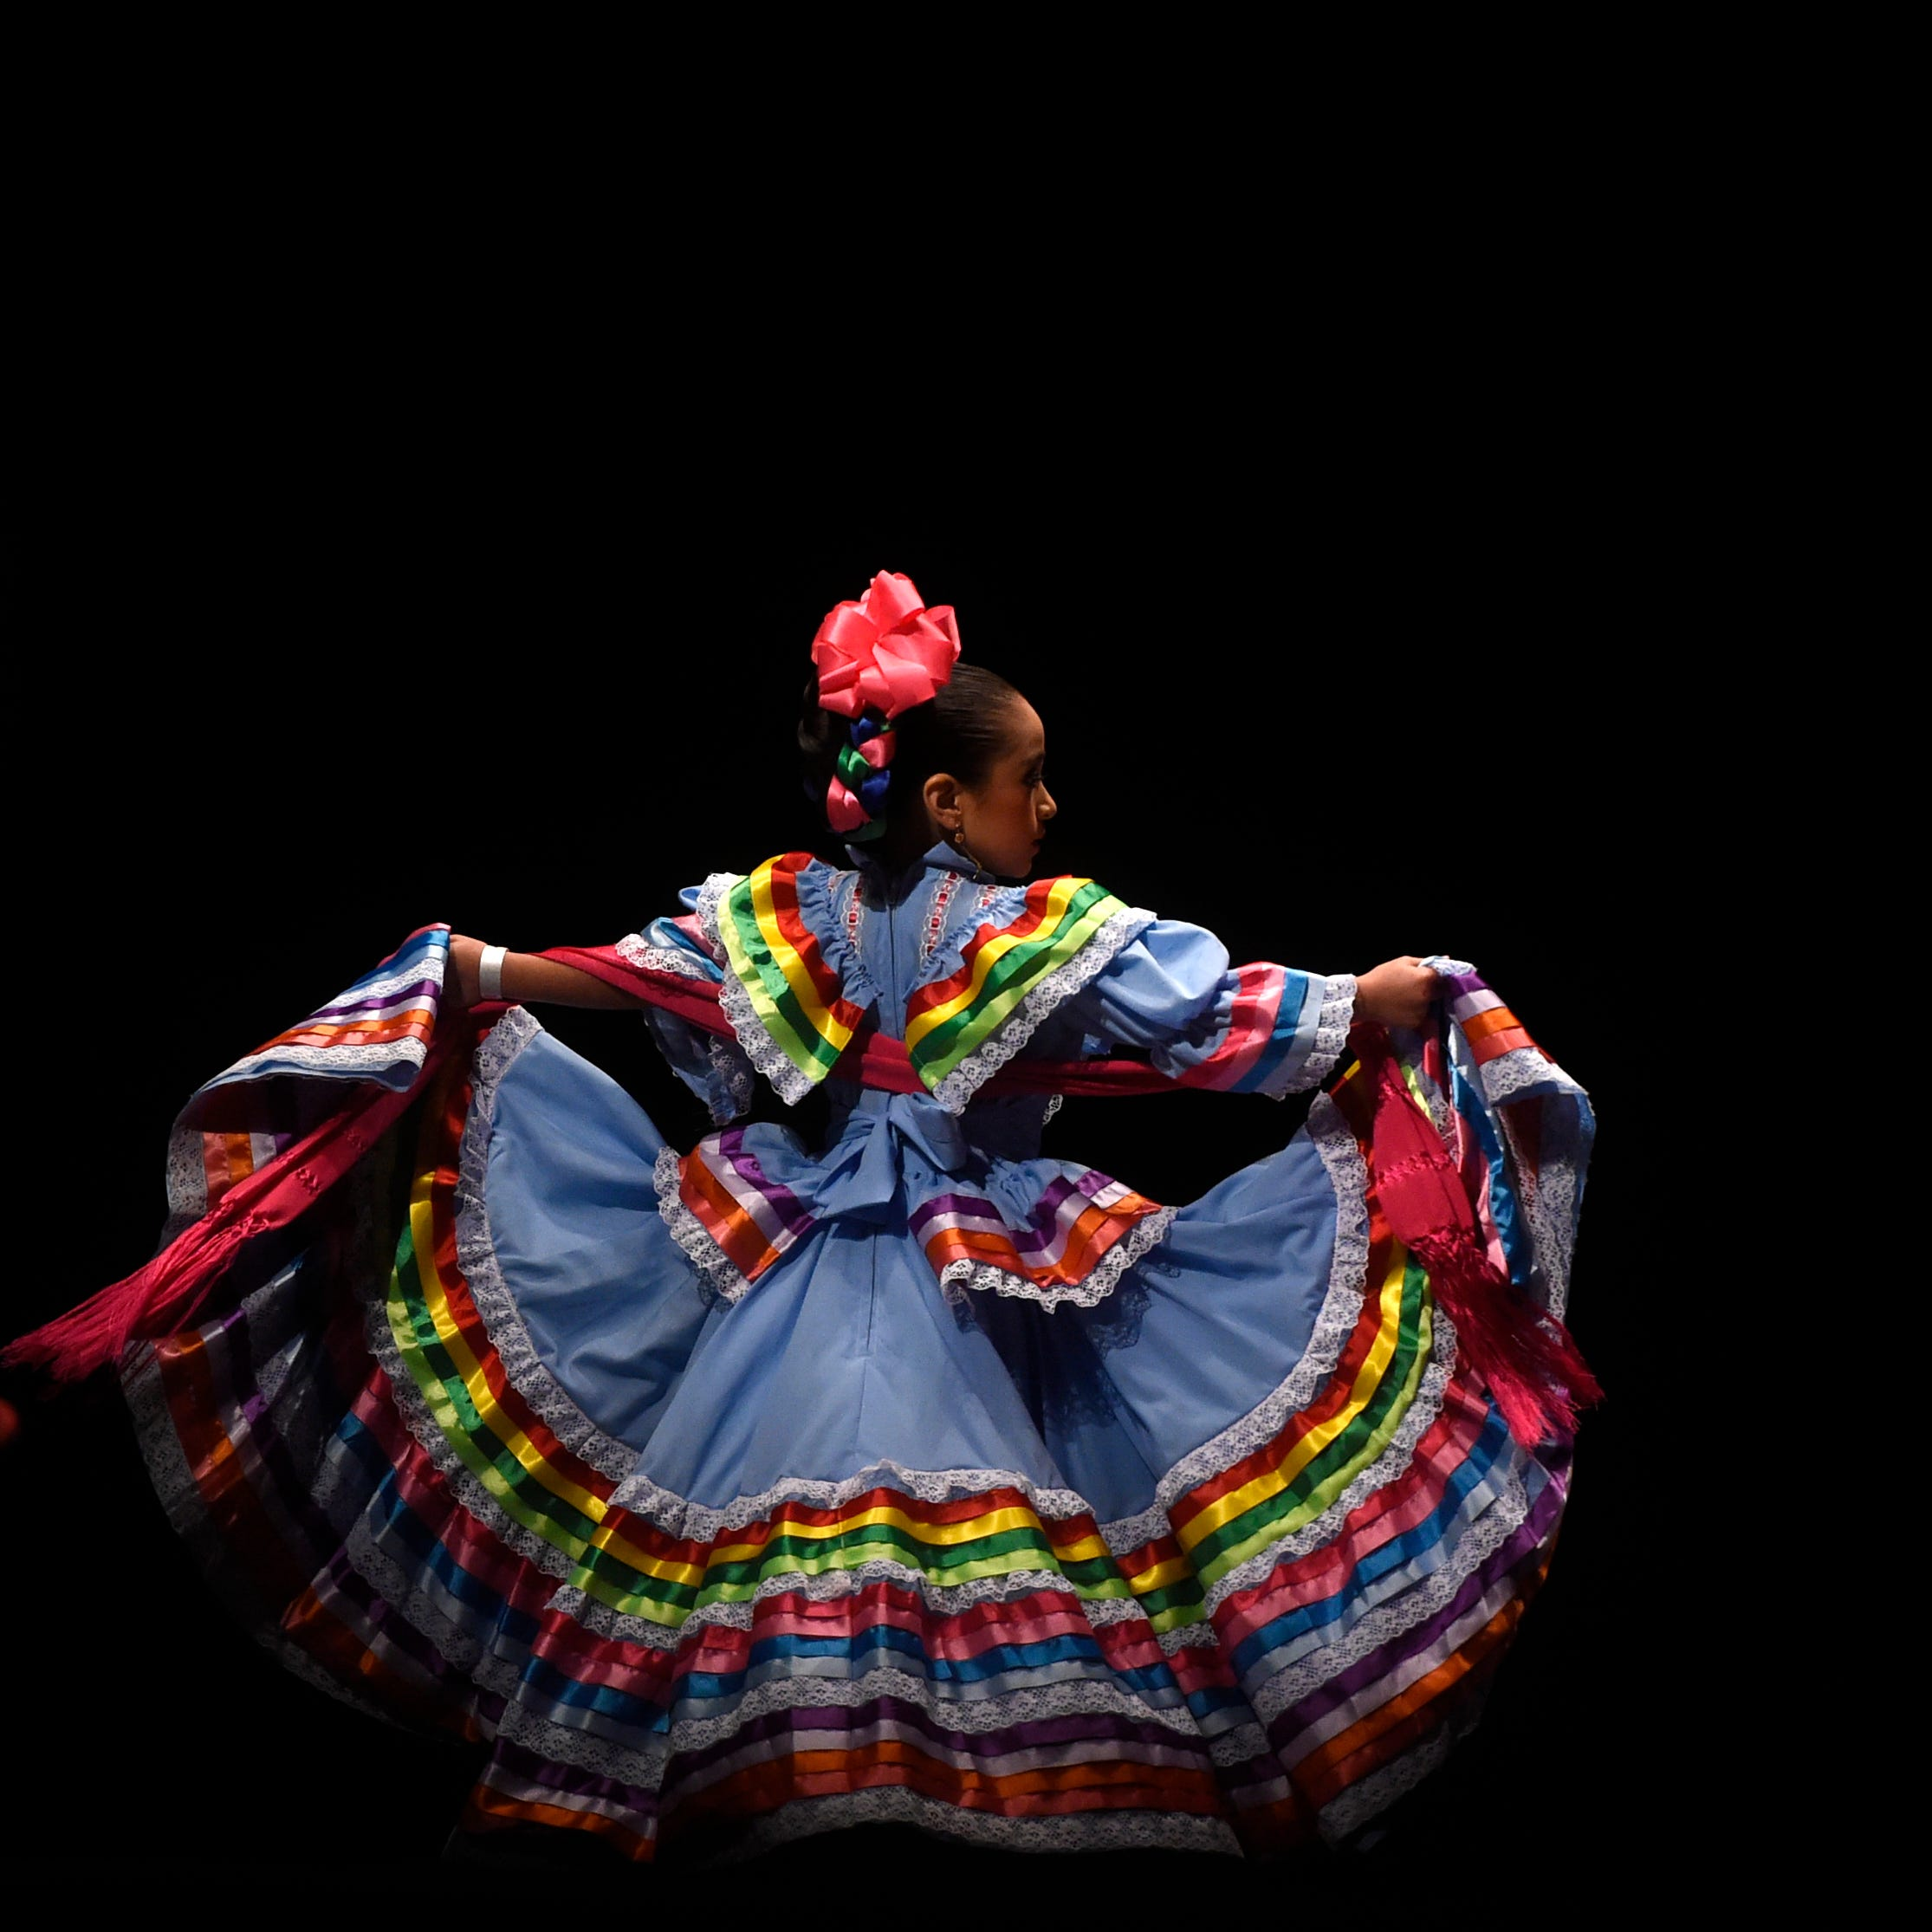 Corpus Christi welcomes colorful folklorico dancers at annual competition